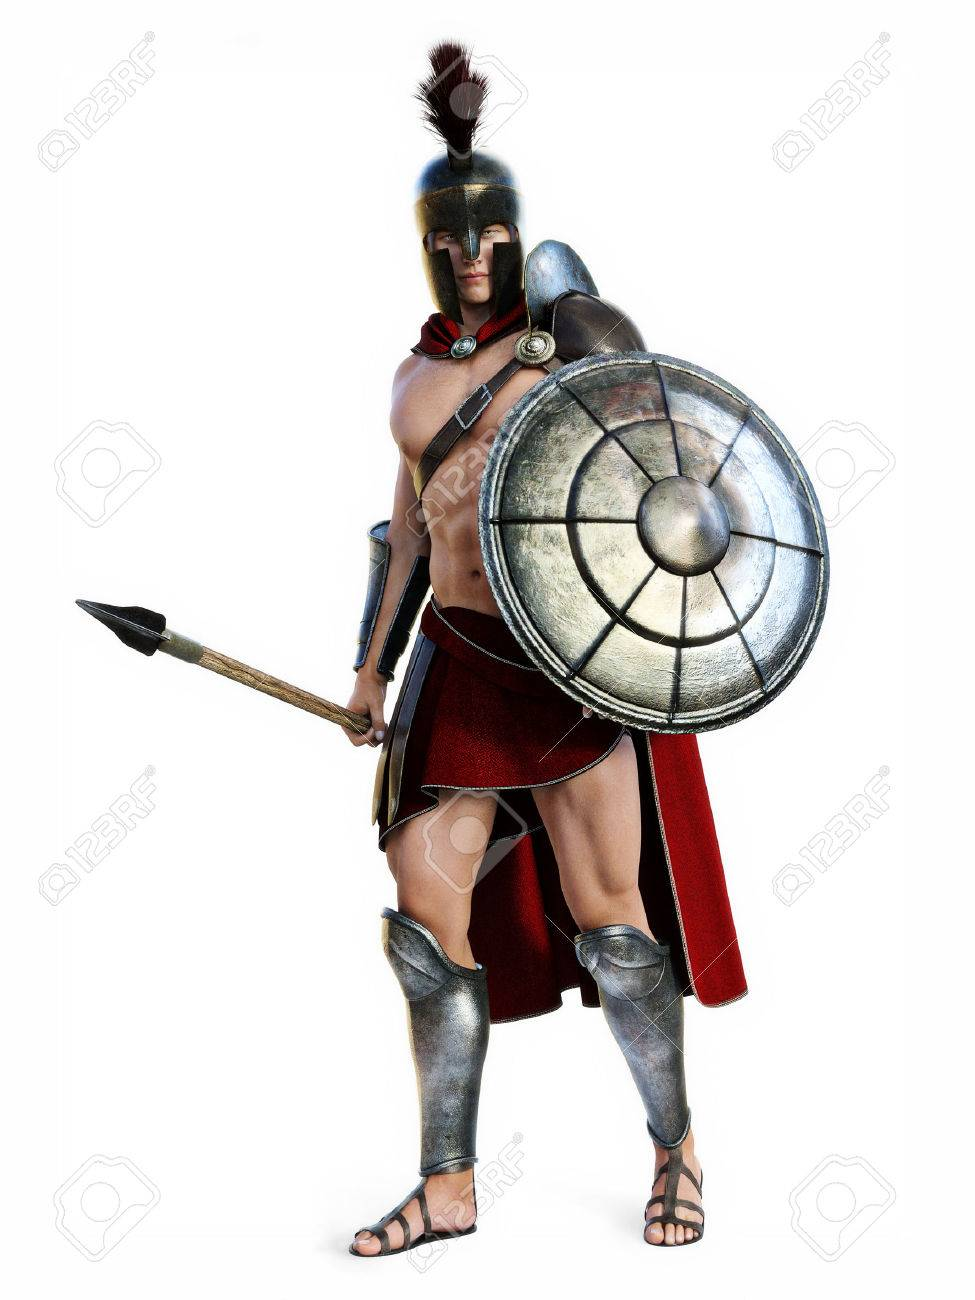 The Spartan , Full length illustration of a Spartan in Battle dress posing on a white background. Photo realistic 3d model scene. Standard-Bild - 52448670